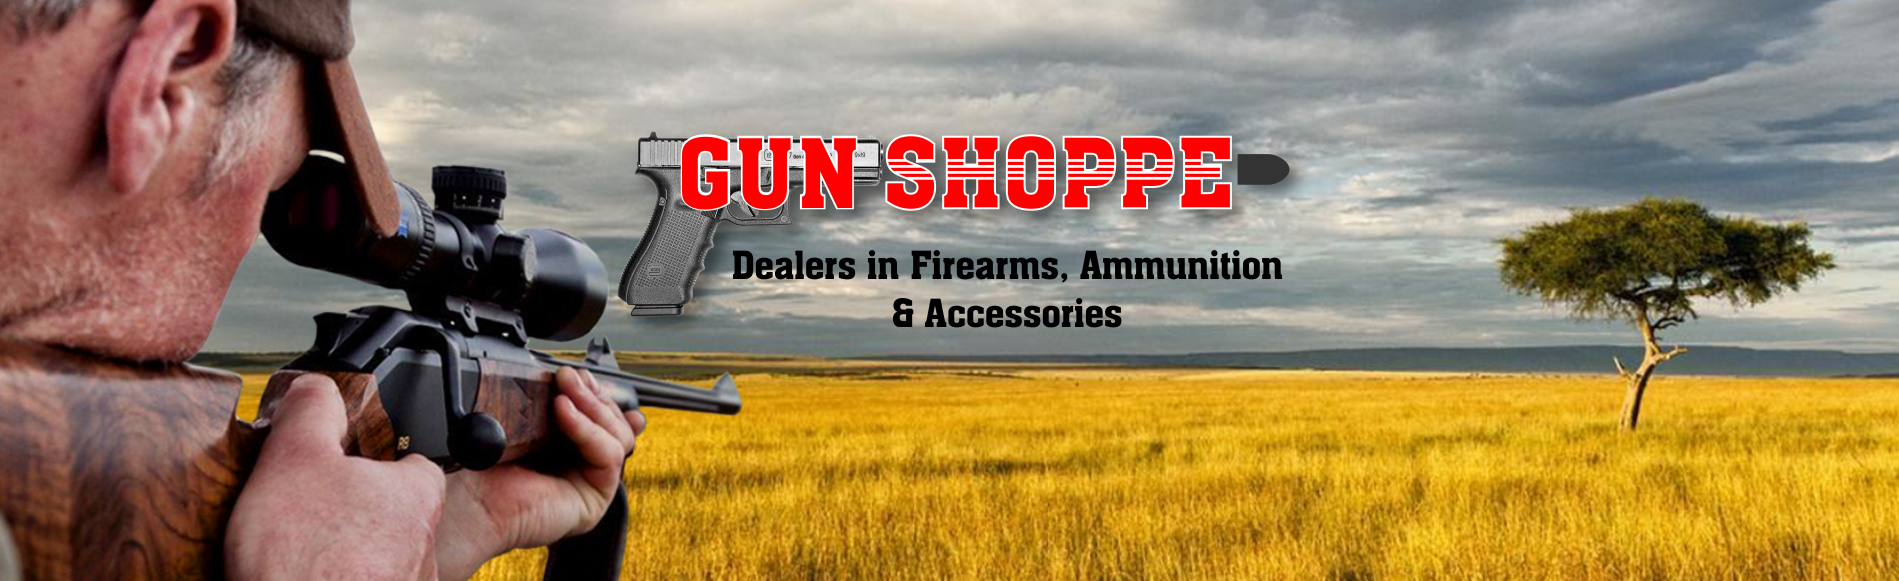 Gun-Shoppe-New-banner-003